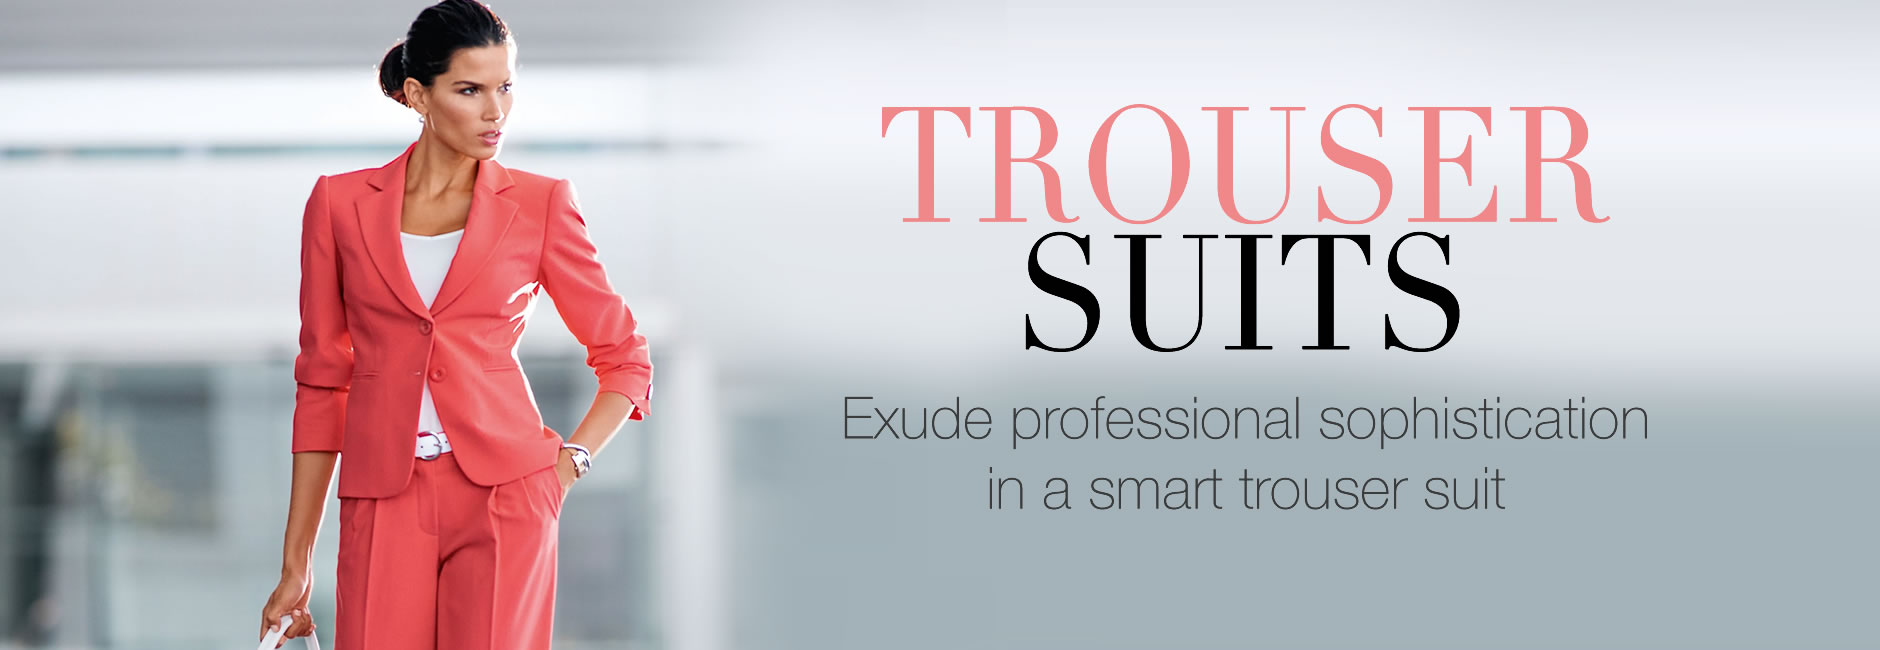 Shop trouser suits